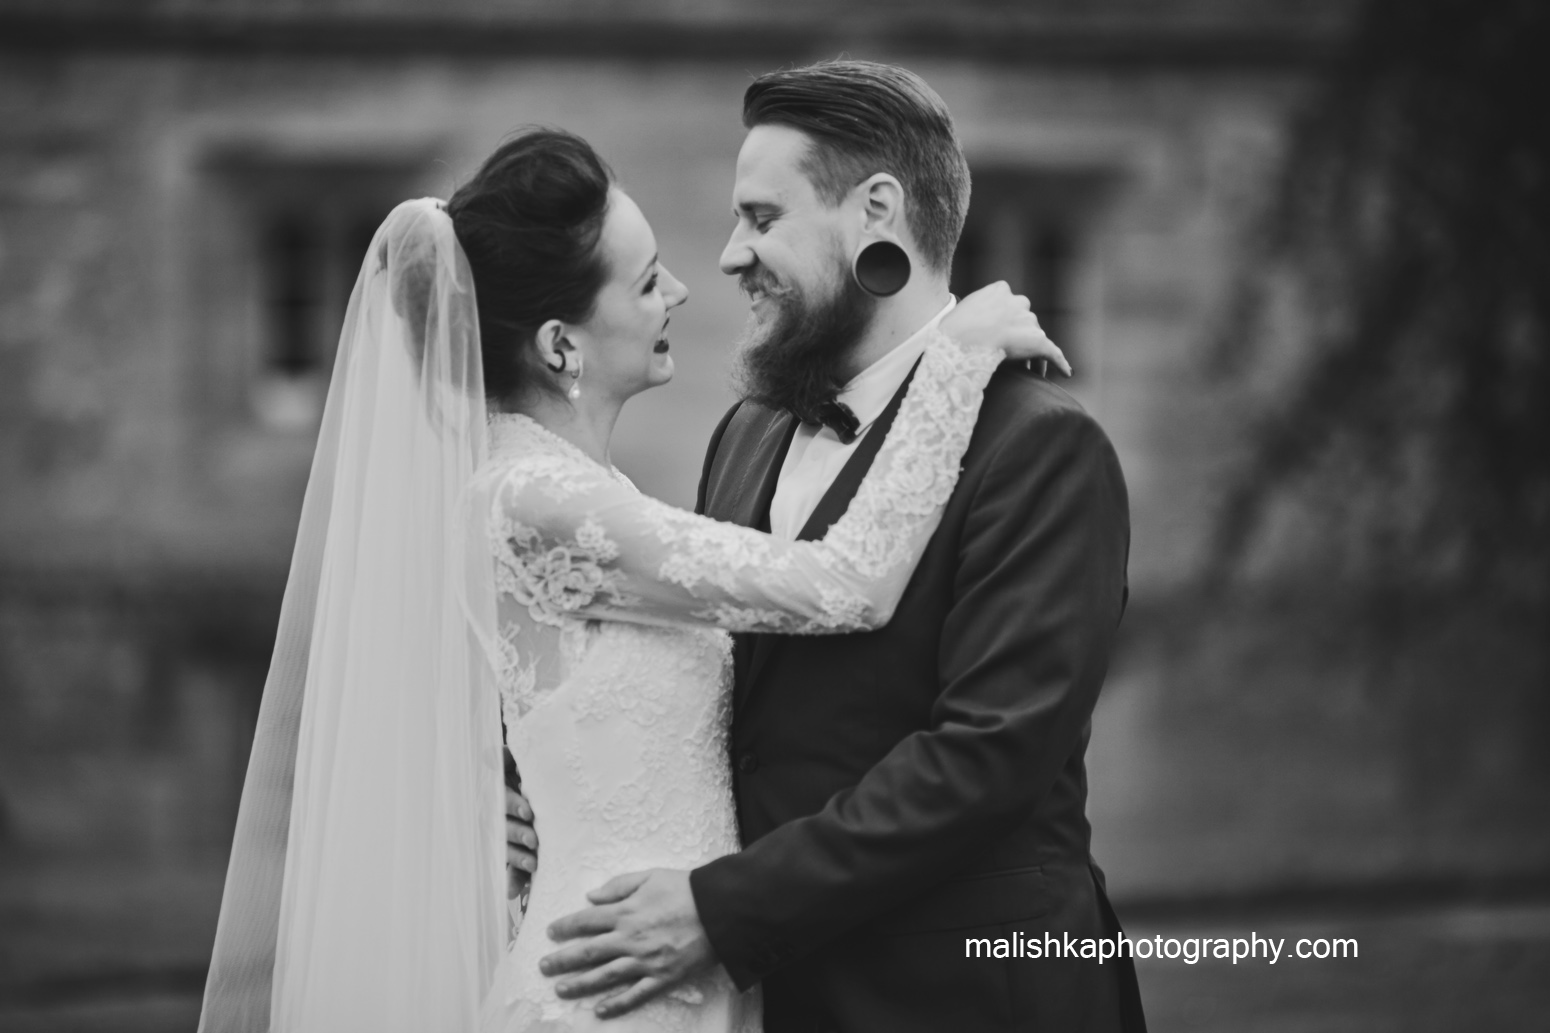 Dalhousie Castle wedding images